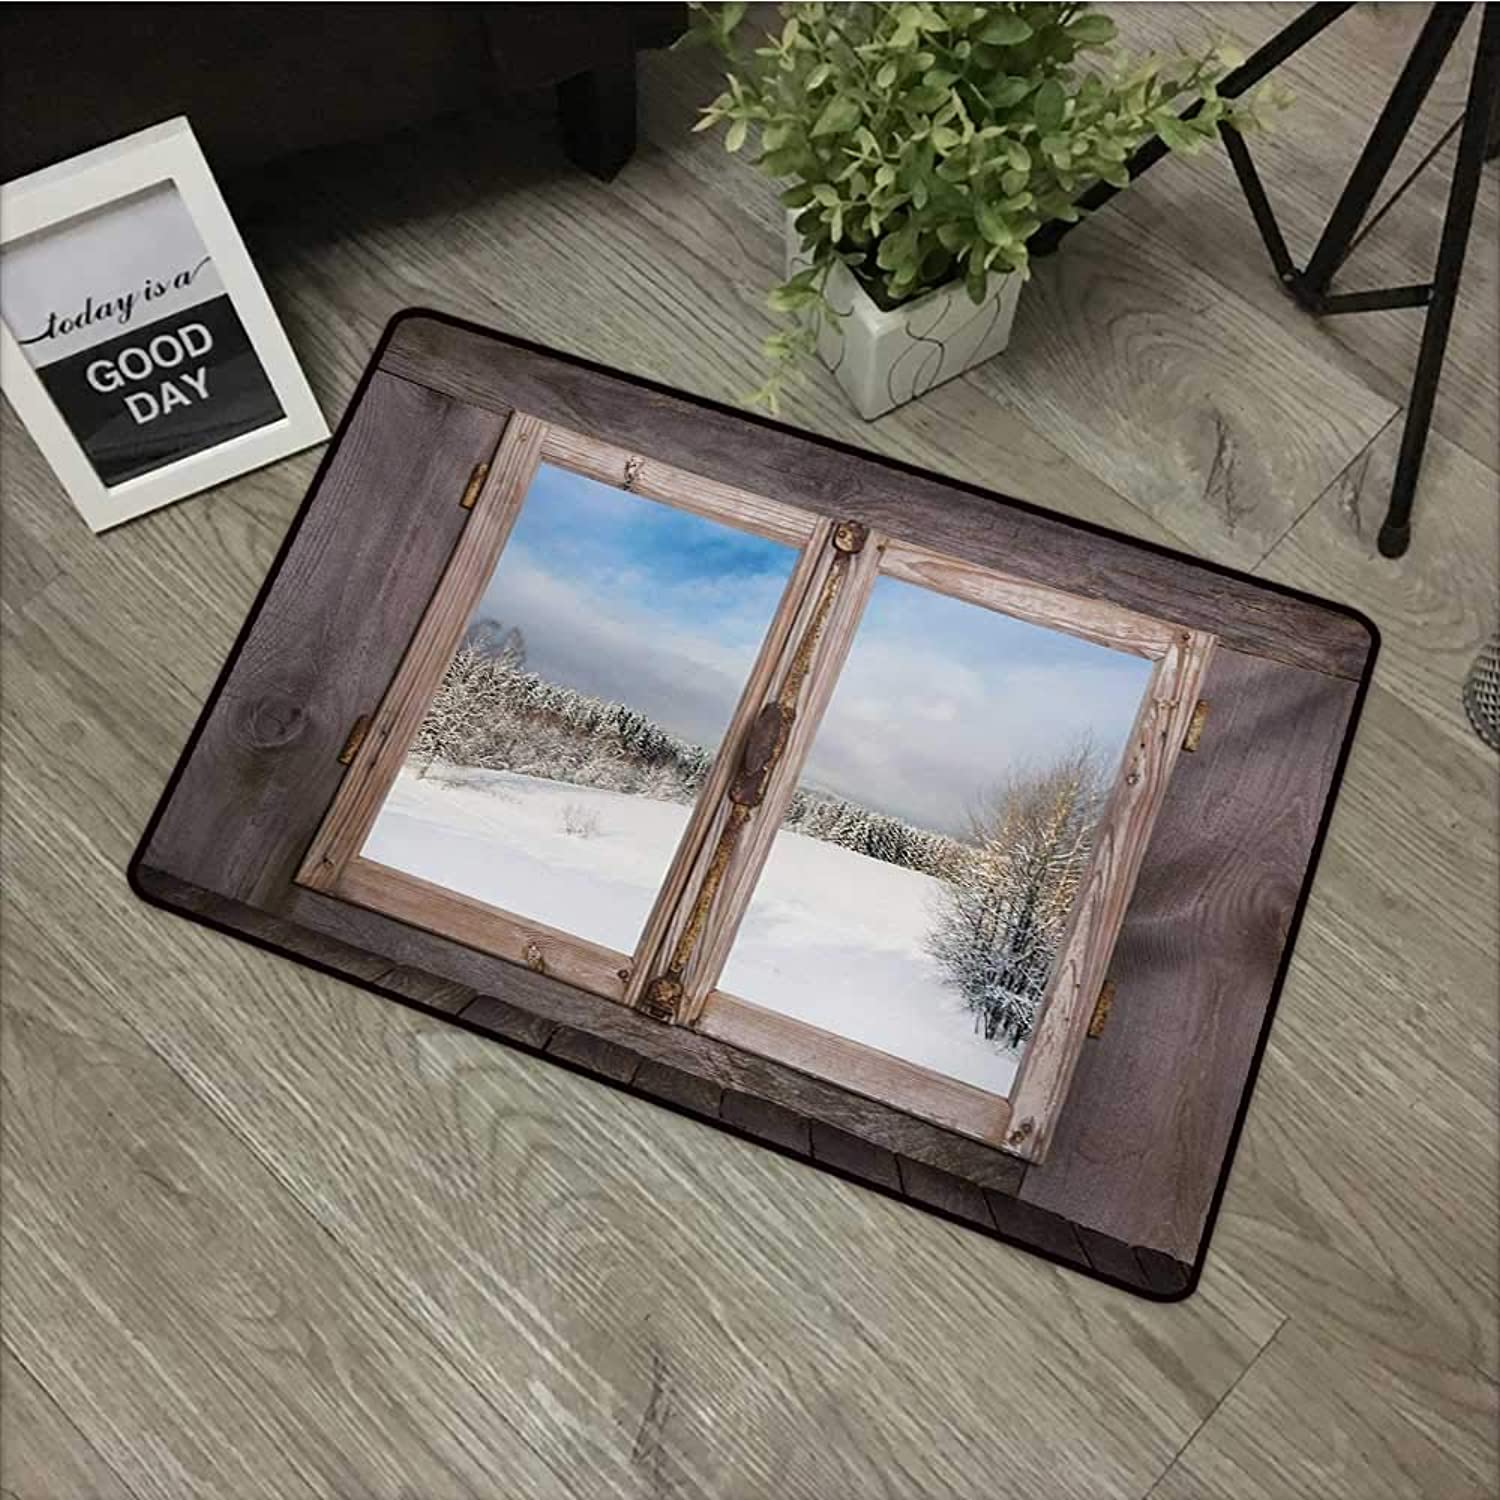 Corridor door mat W35 x L59 INCH Rustic,Winter Season Scene from a Wooden Window of Country House Snow Vintage Design,Umber White bluee Easy to clean, no deformation, no fading Non-slip Door Mat Carpet